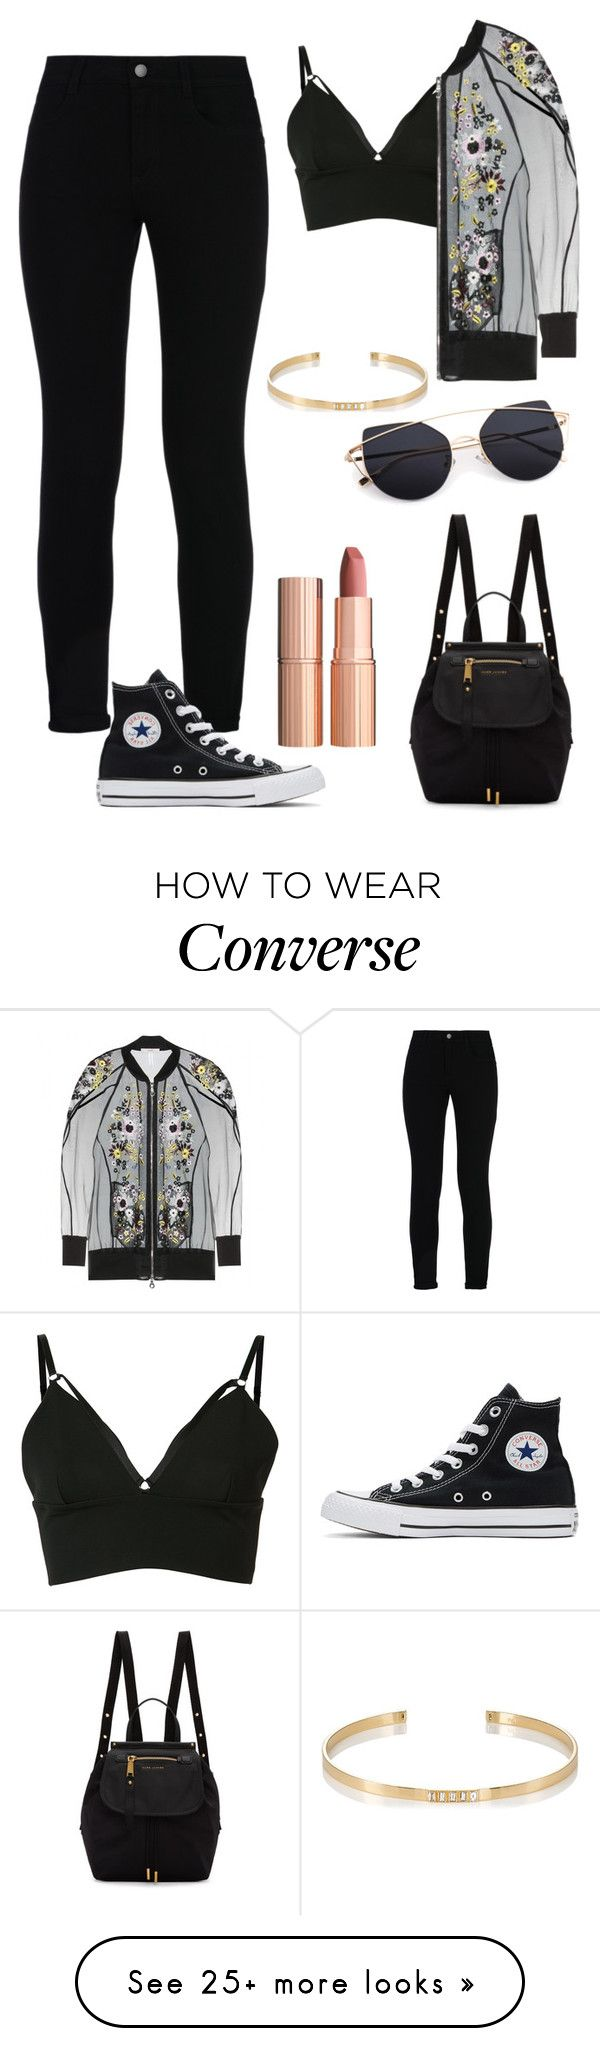 """Untitled #634"" by aya-omar on Polyvore featuring Alexander Wang, STELLA McCARTNEY, Erdem, Converse, Marc Jacobs, Ileana Makri and Charlotte Tilbury"